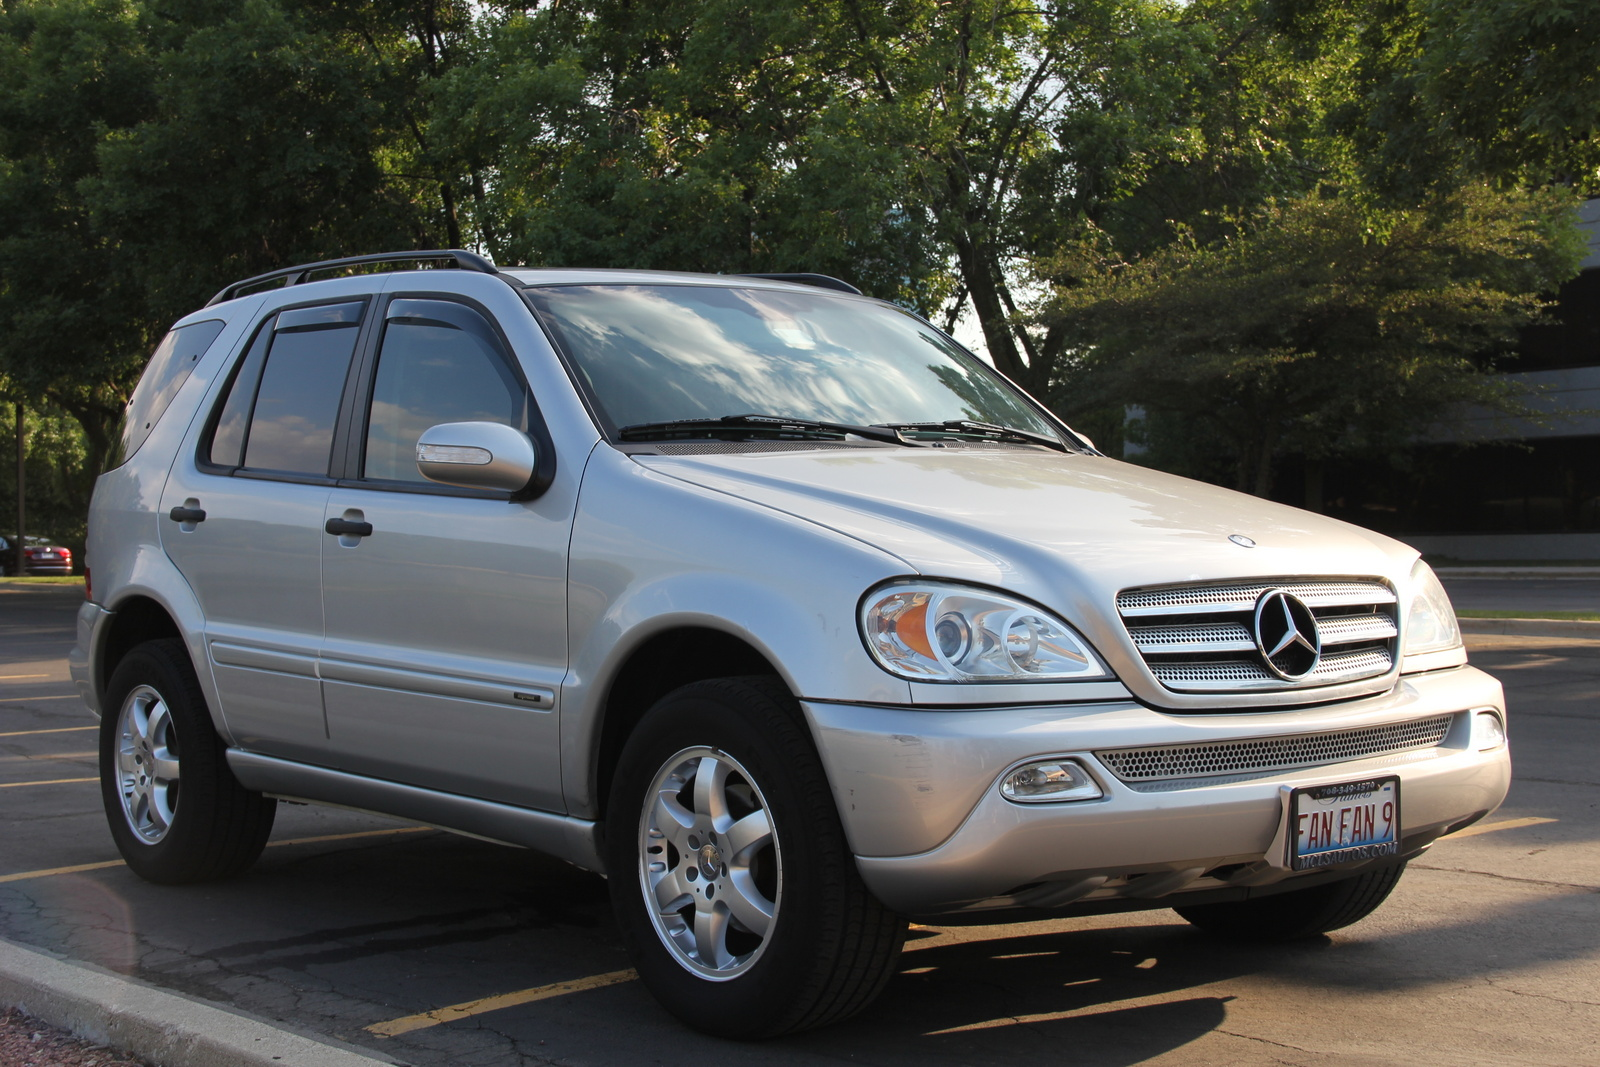 2002 mercedes benz m class image 11 for 2002 mercedes benz suv